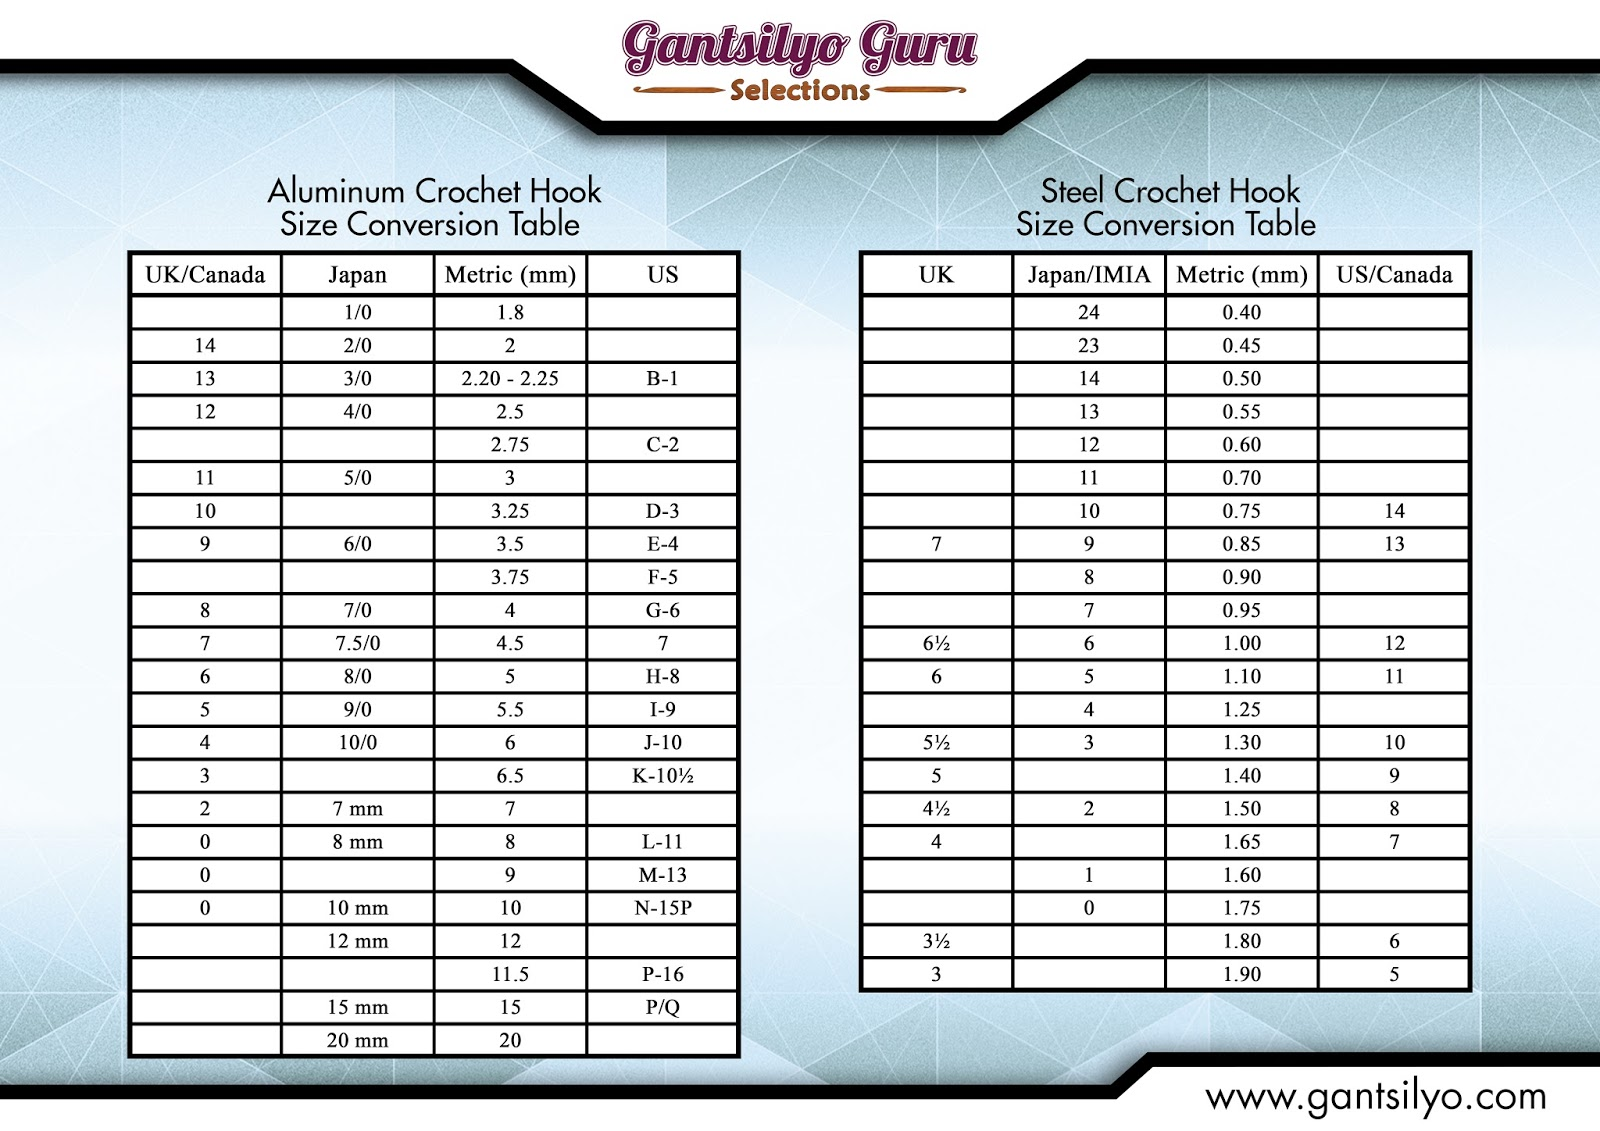 Knitting Needle Sizes Uk To Metric : Gantsilyo guru crochet hook conversion